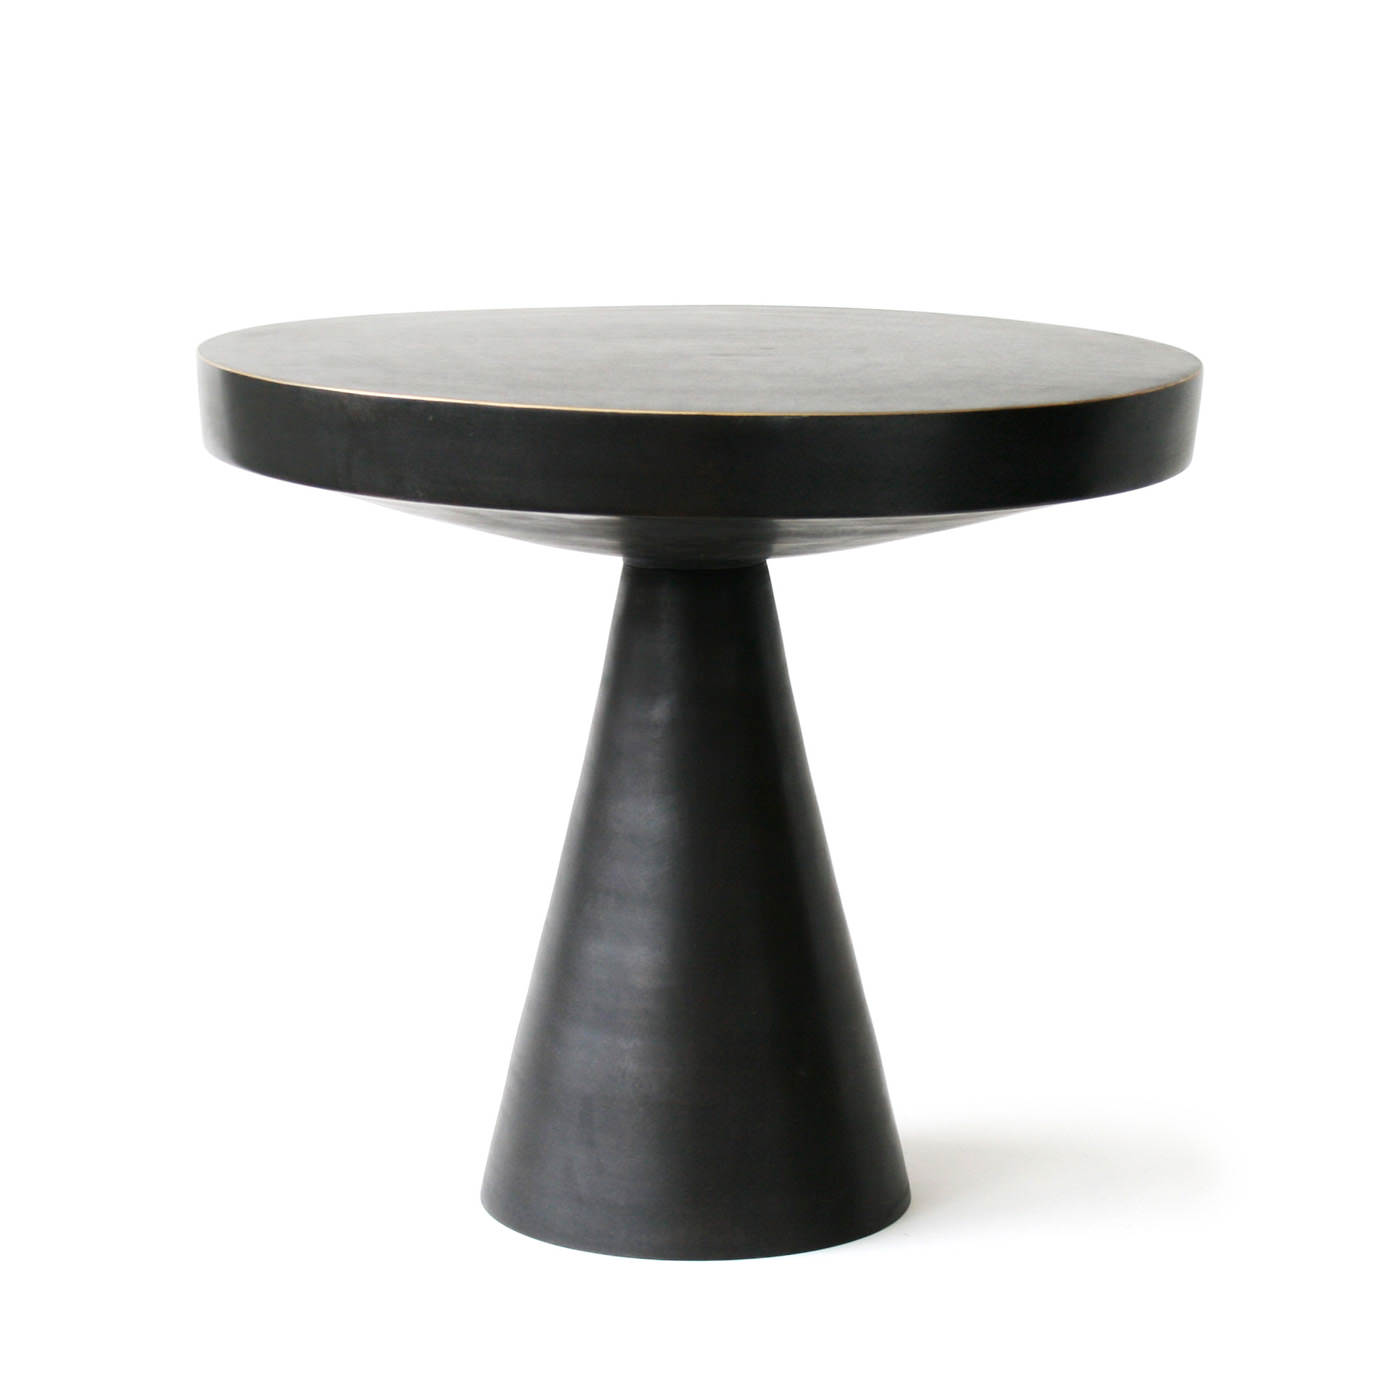 the terrific real black side table round mira road natural wooden pedestal accent kirklands remodel coffee tables great modern fresh wood and within decorations white dining solid